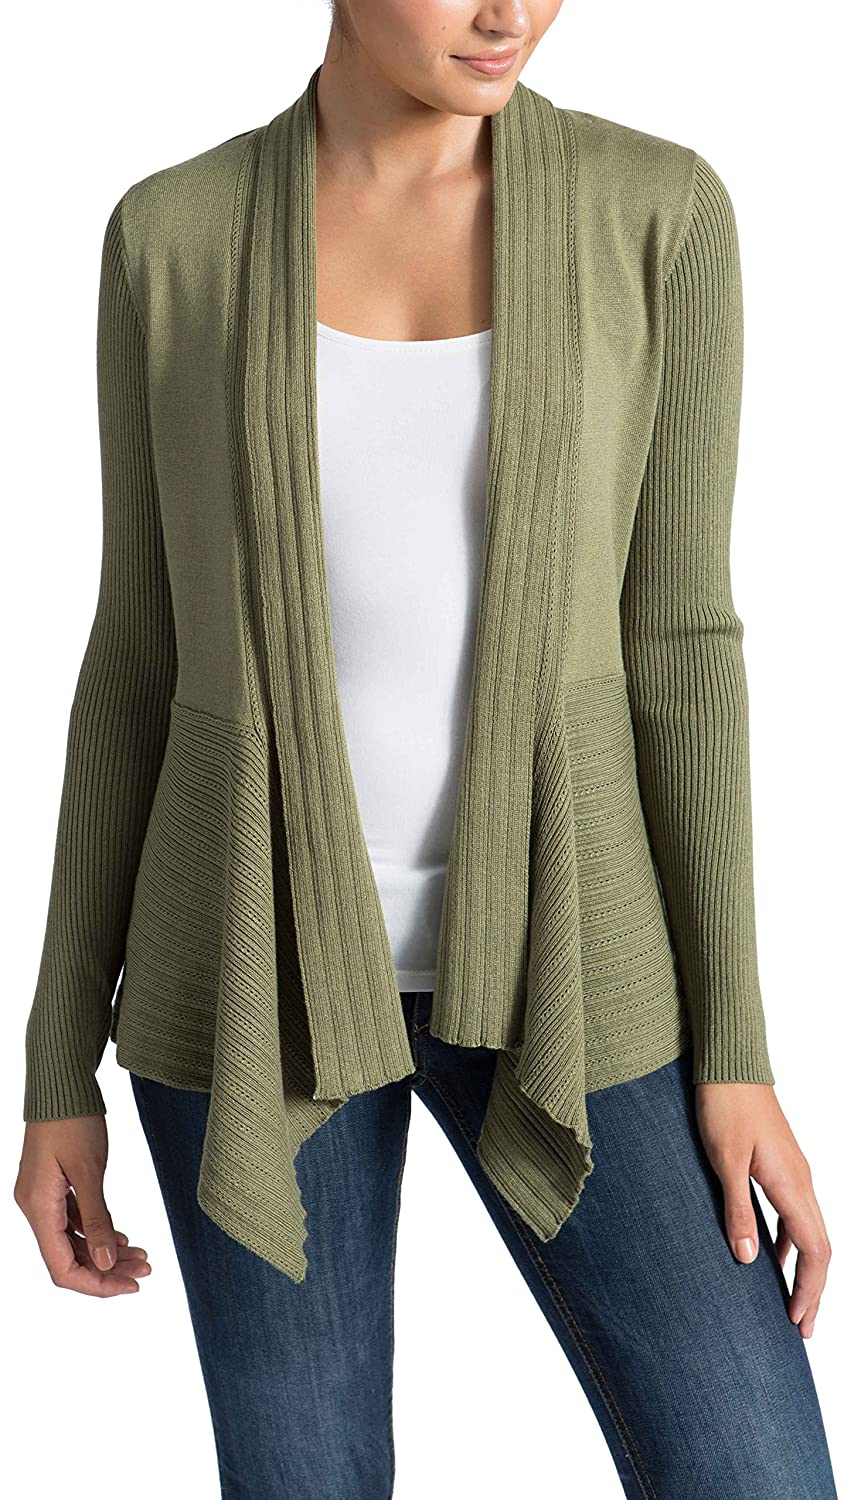 89th&Madison Long Sleeve Draped Open Cardigan Sweater with Pointelle Details and Ribbed Sleeves